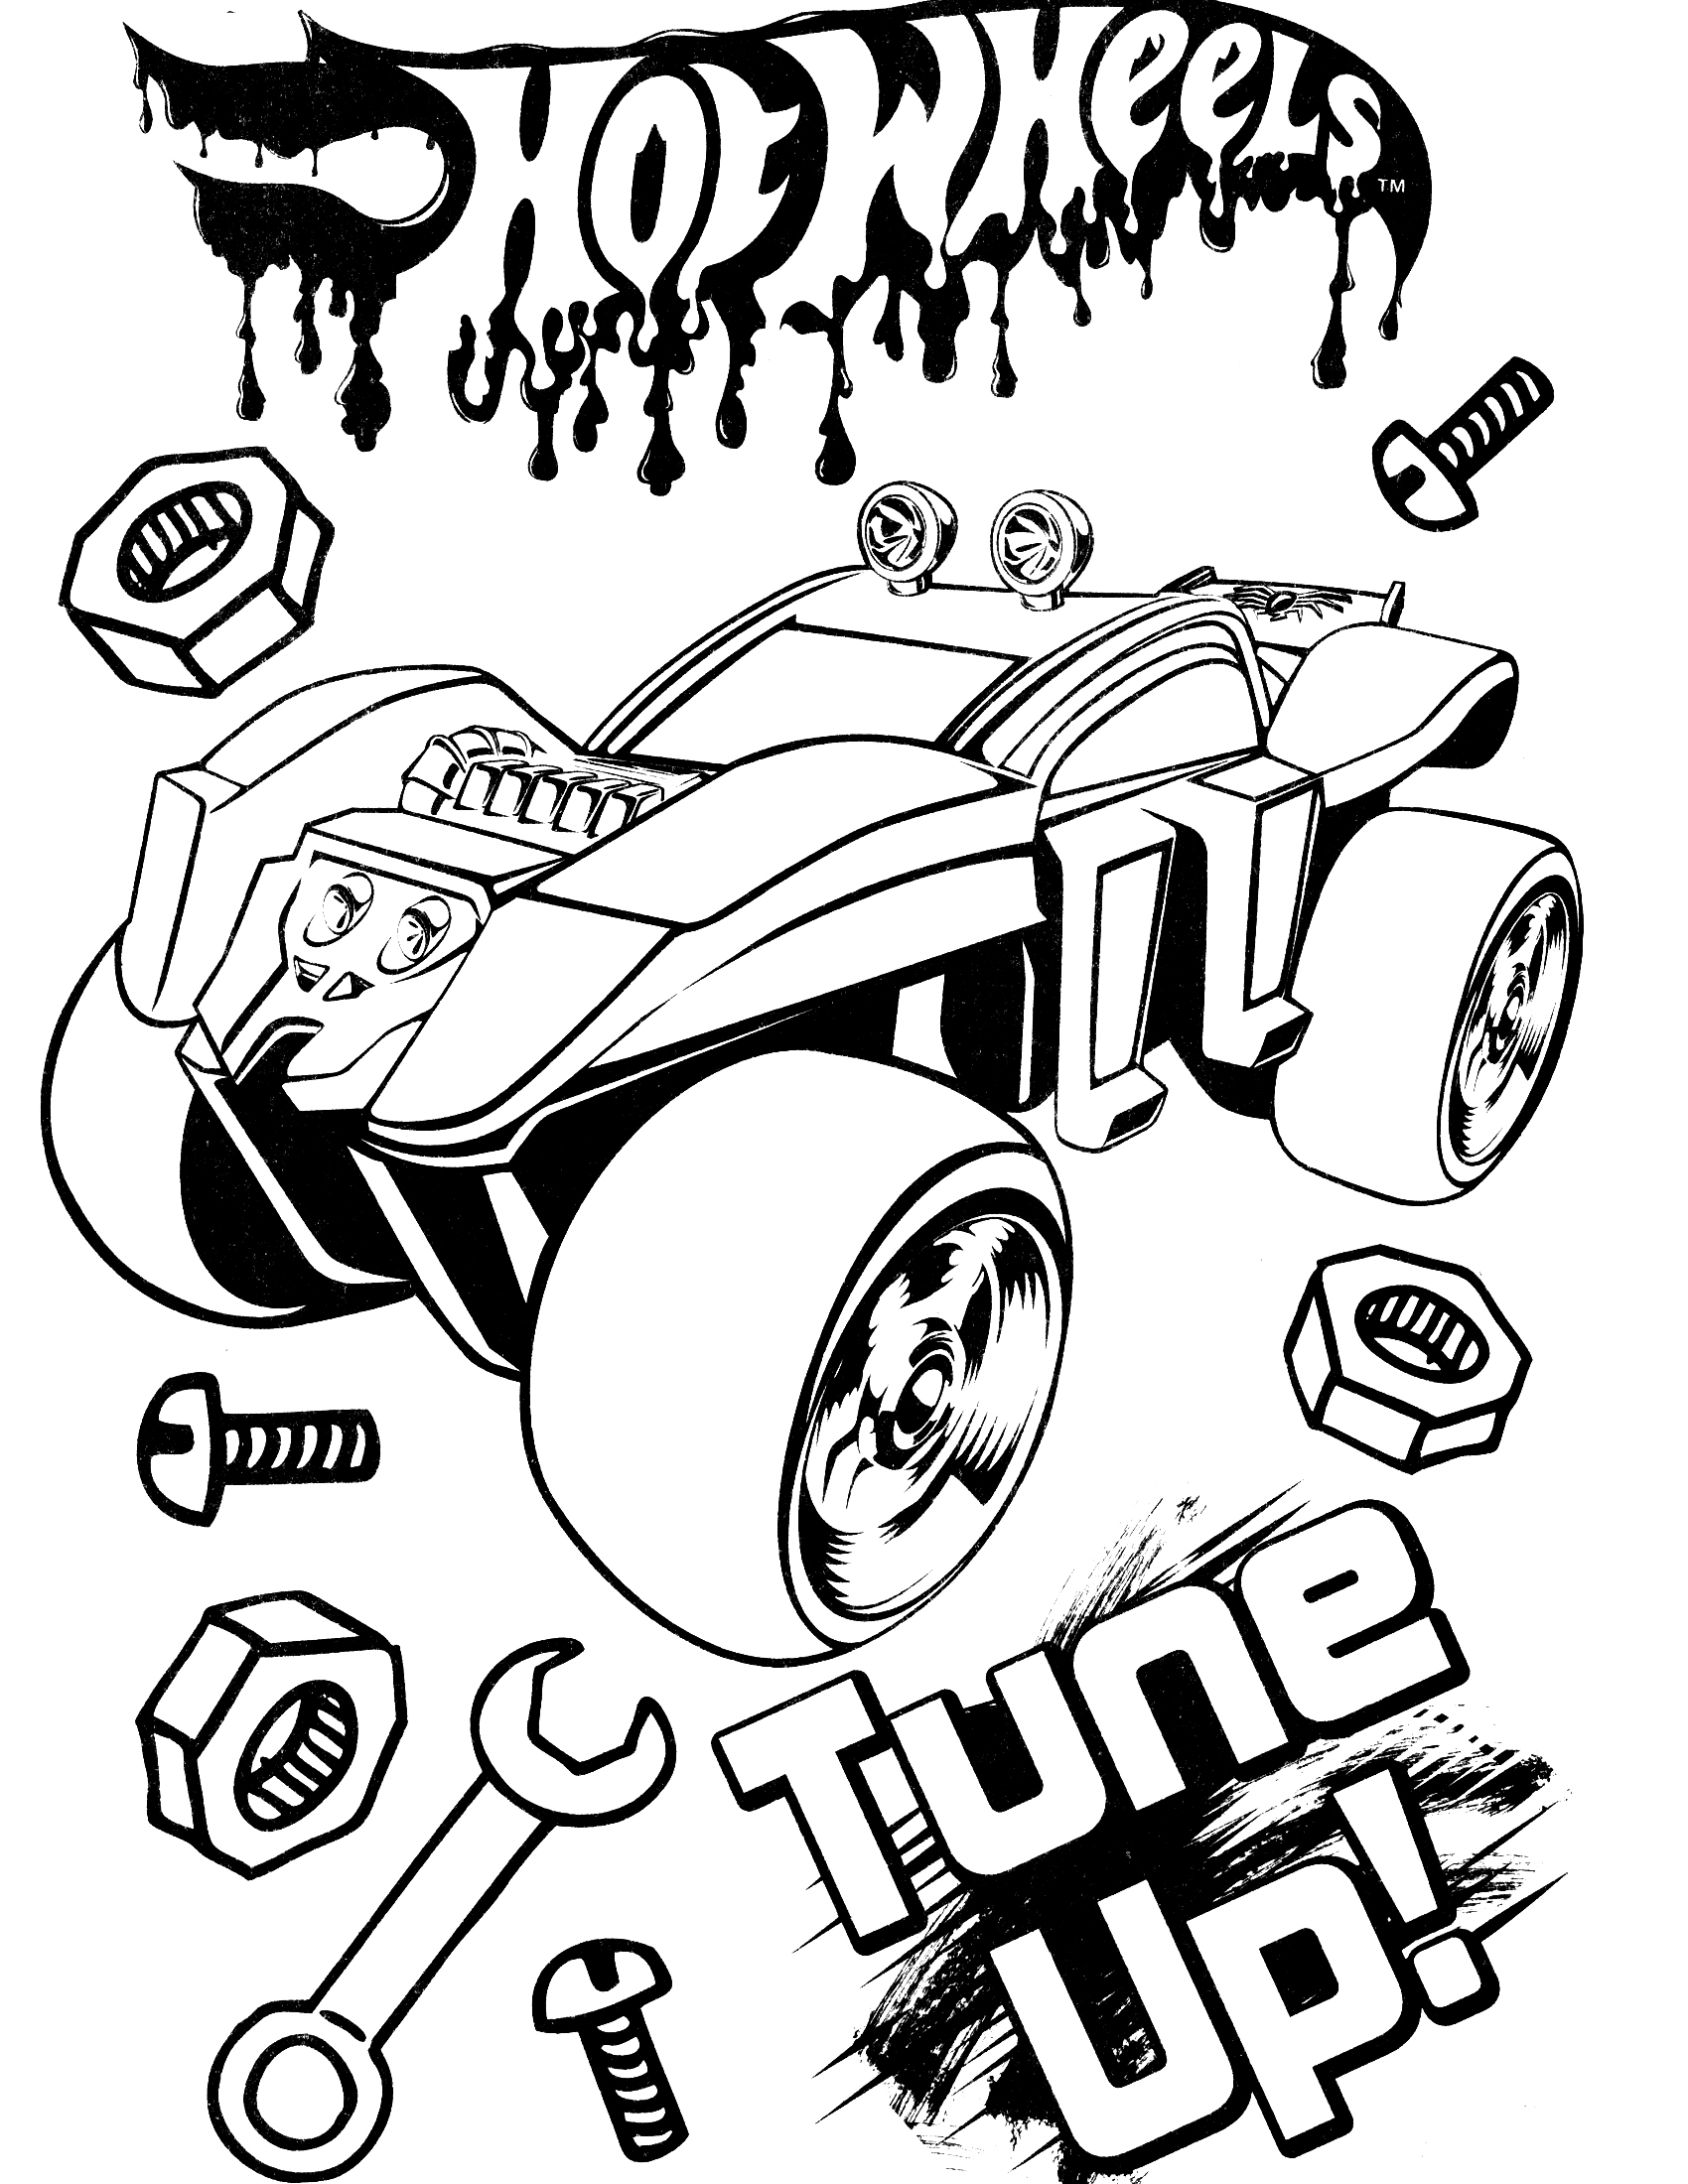 Coloring pages for hot wheels - Hot Wheels Coloring Pages To Print